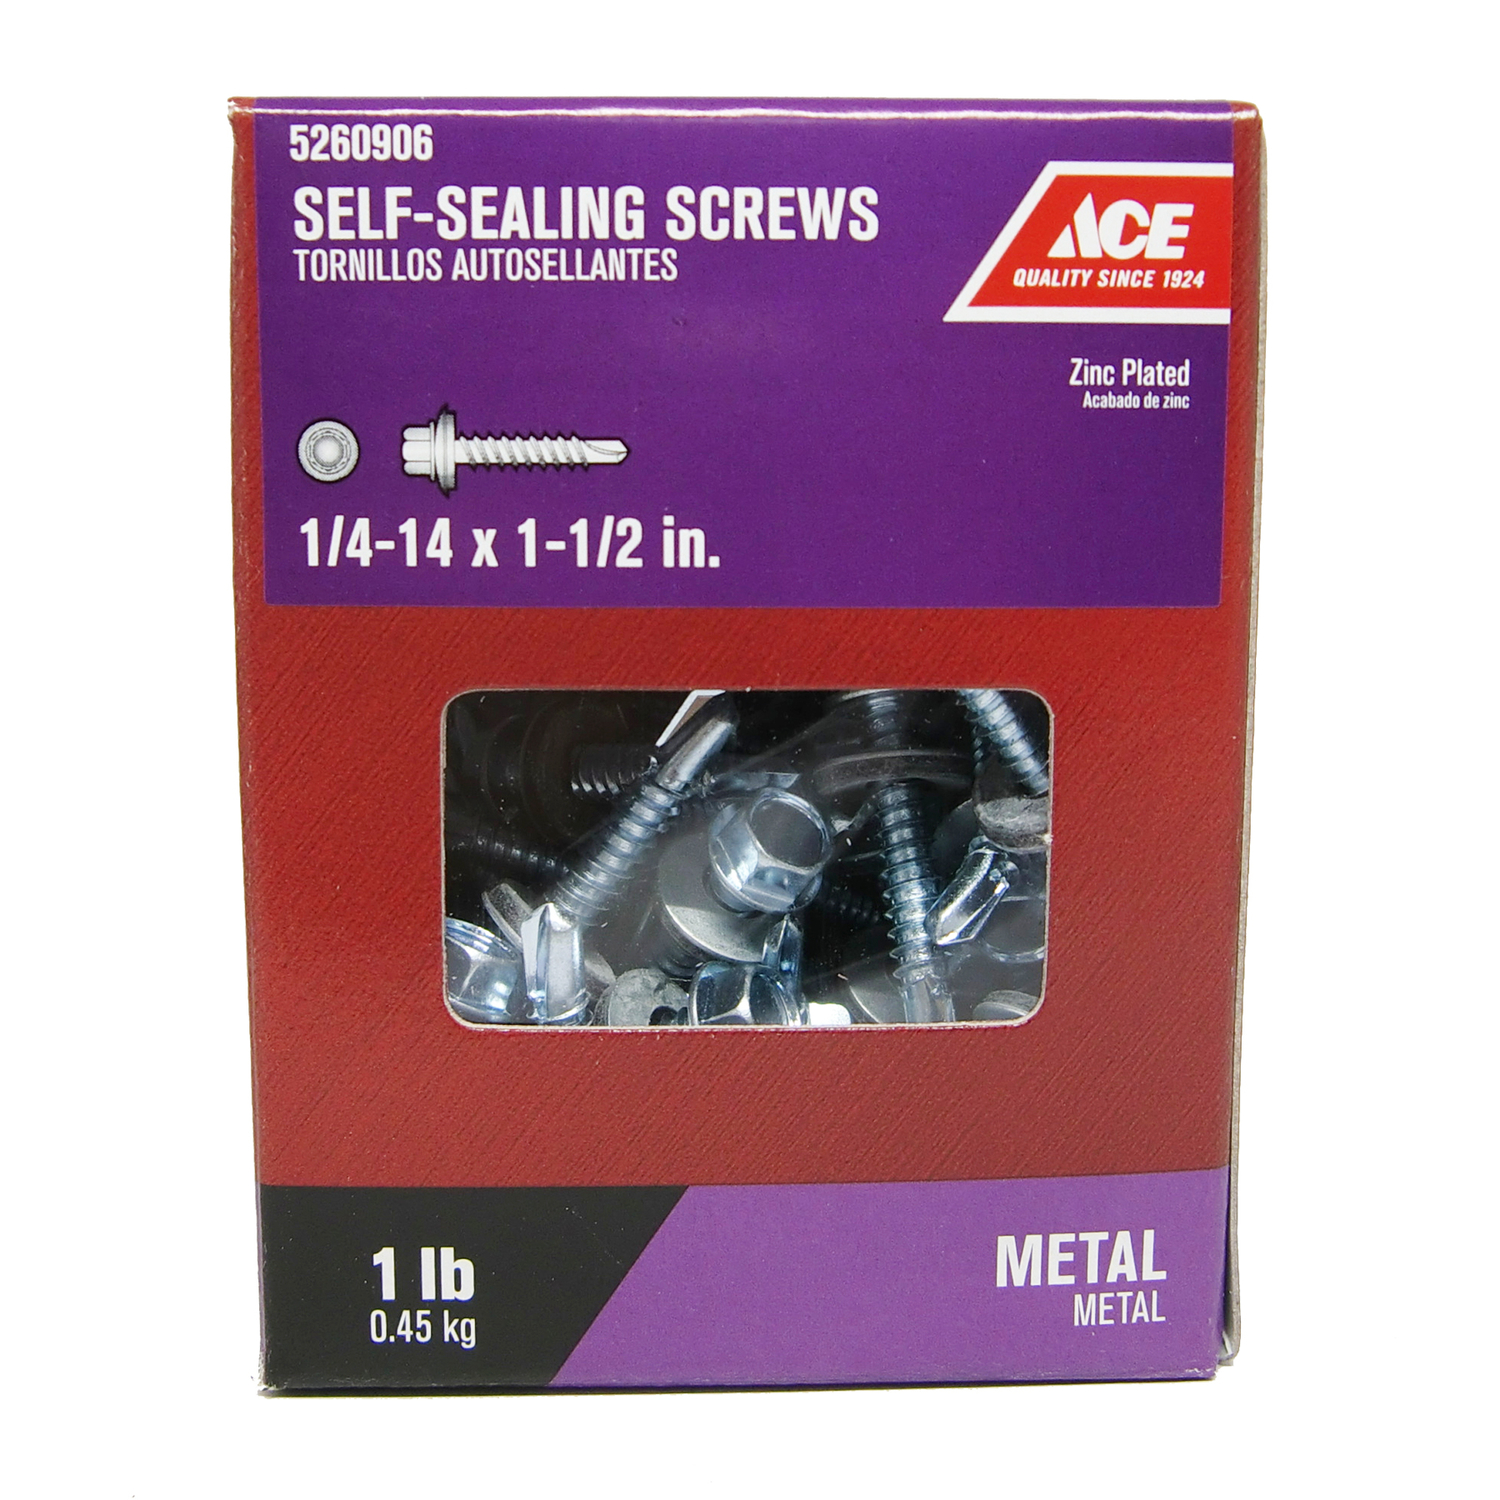 Ace  1/4-14 Sizes  x 1-1/2 in. L Hex  Hex Washer Head Steel  Self-Sealing Screws  Zinc-Plated  1 lb.